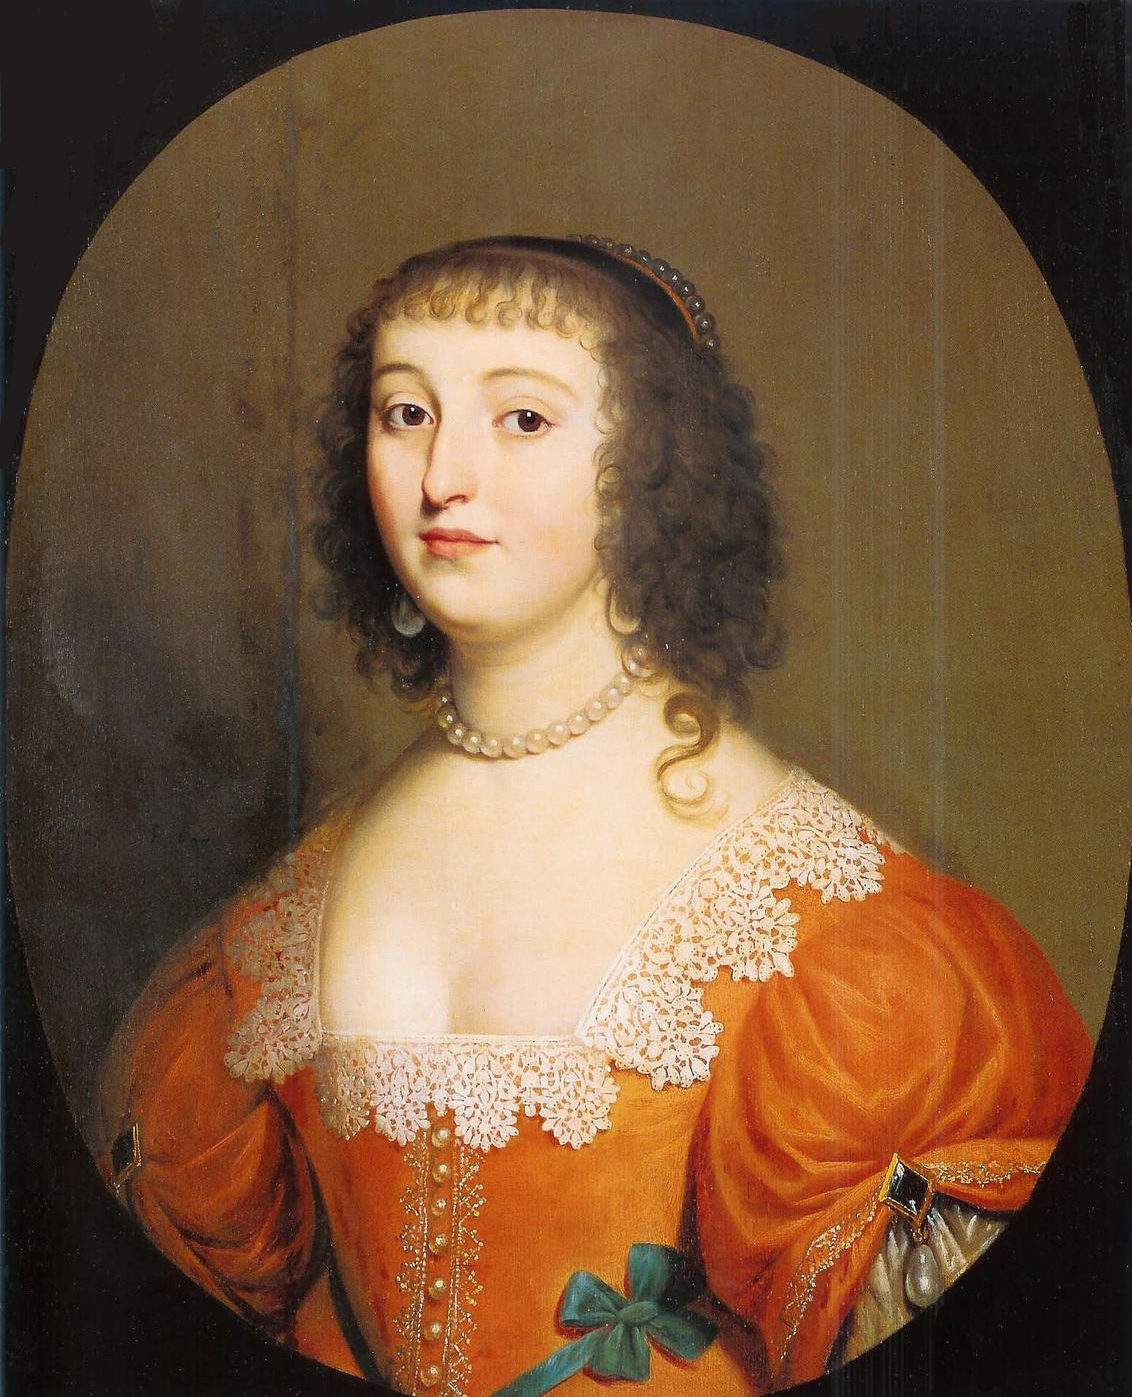 1636_Elisabeth_of_Bohemia-Palatinate by ? (location unknown to gogm)